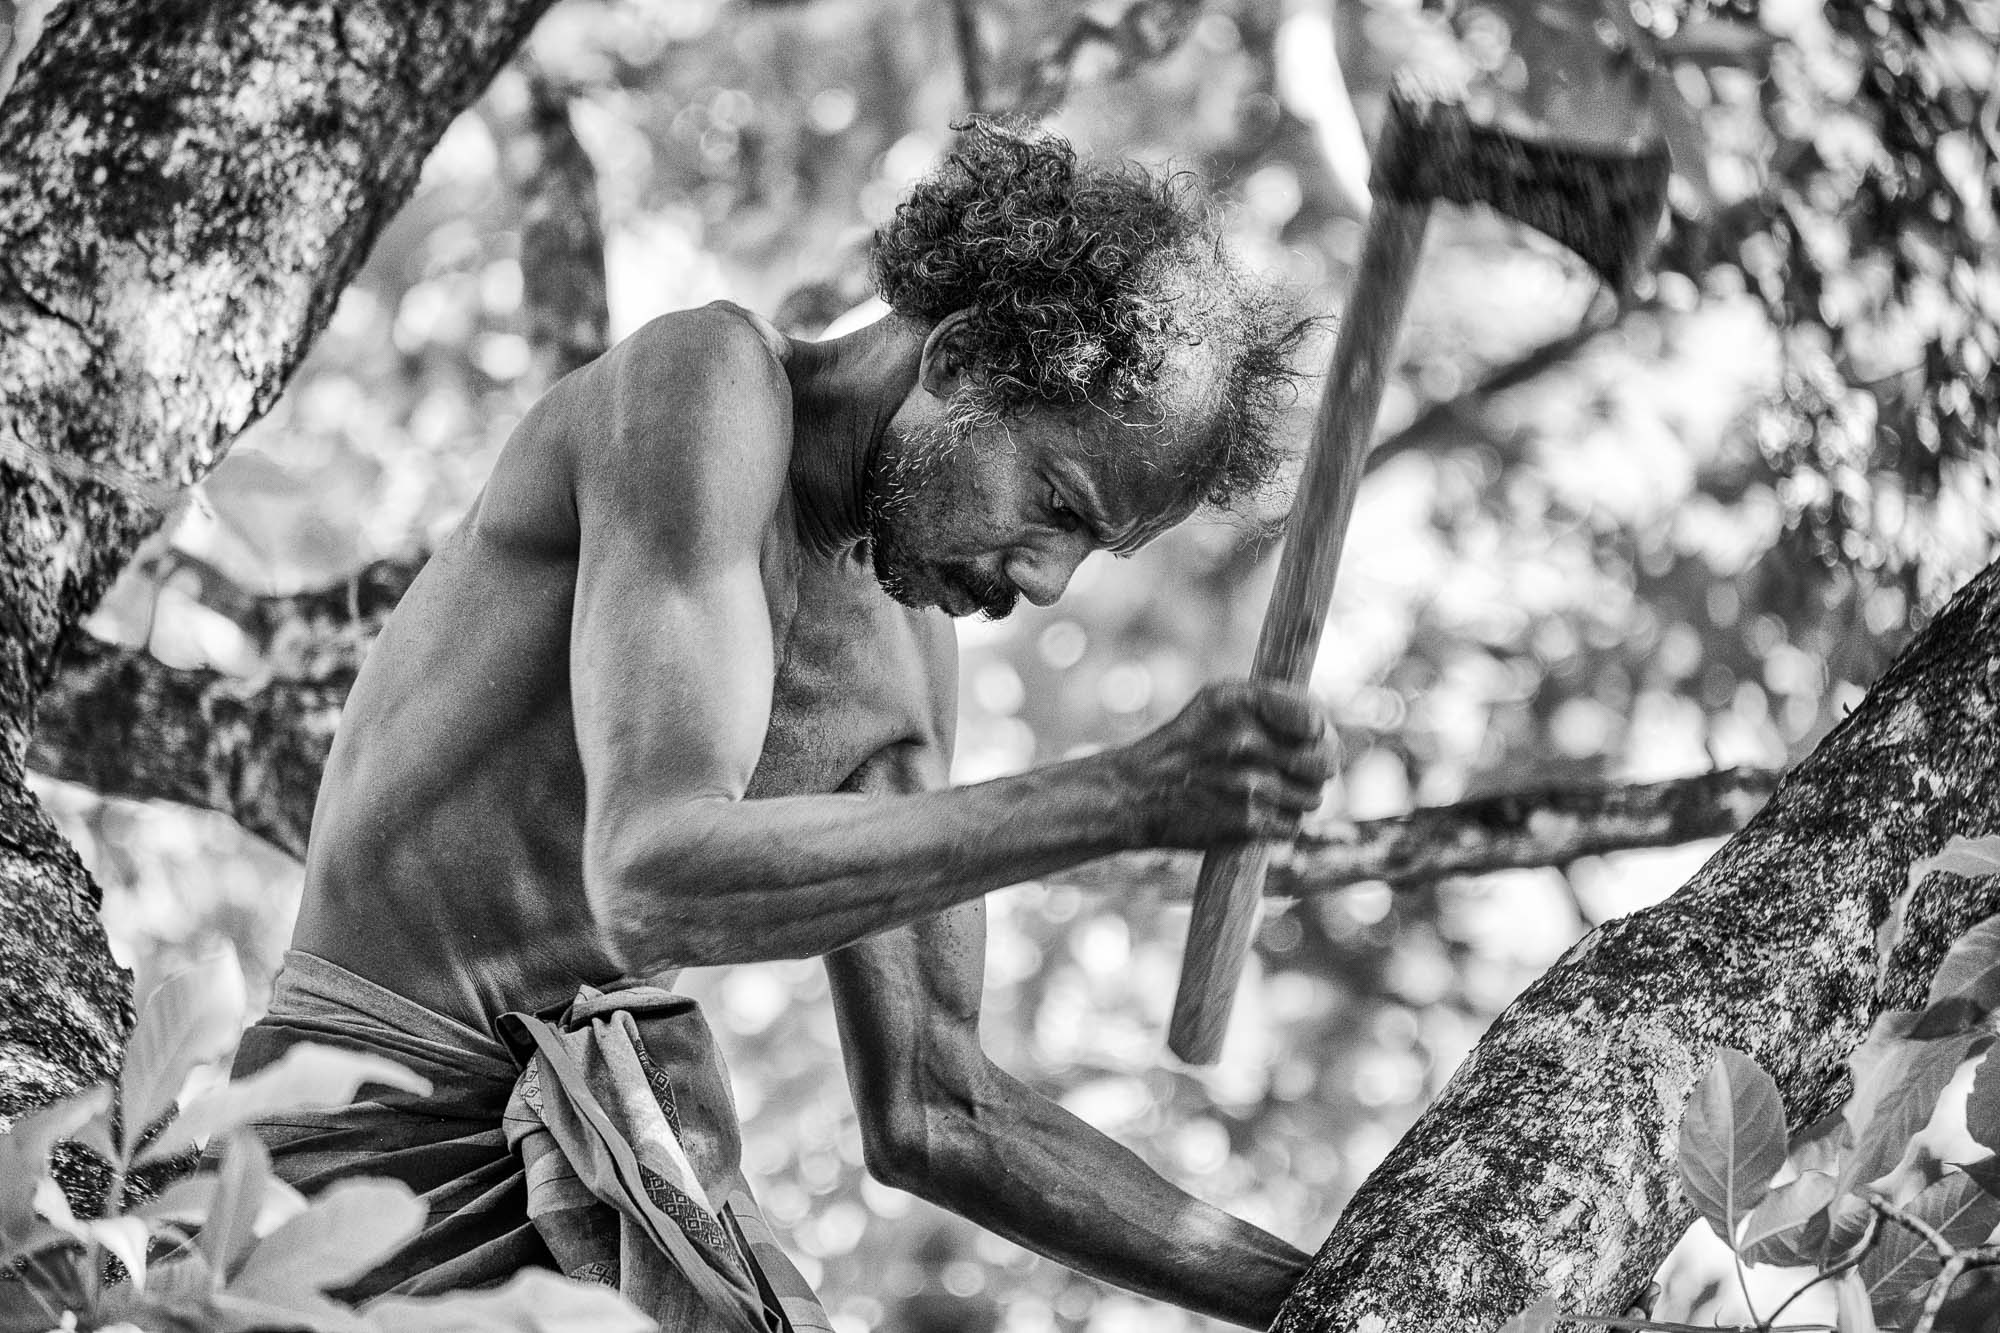 Vadda sri lanka indingenous group people photography - veddas man cutting the tree